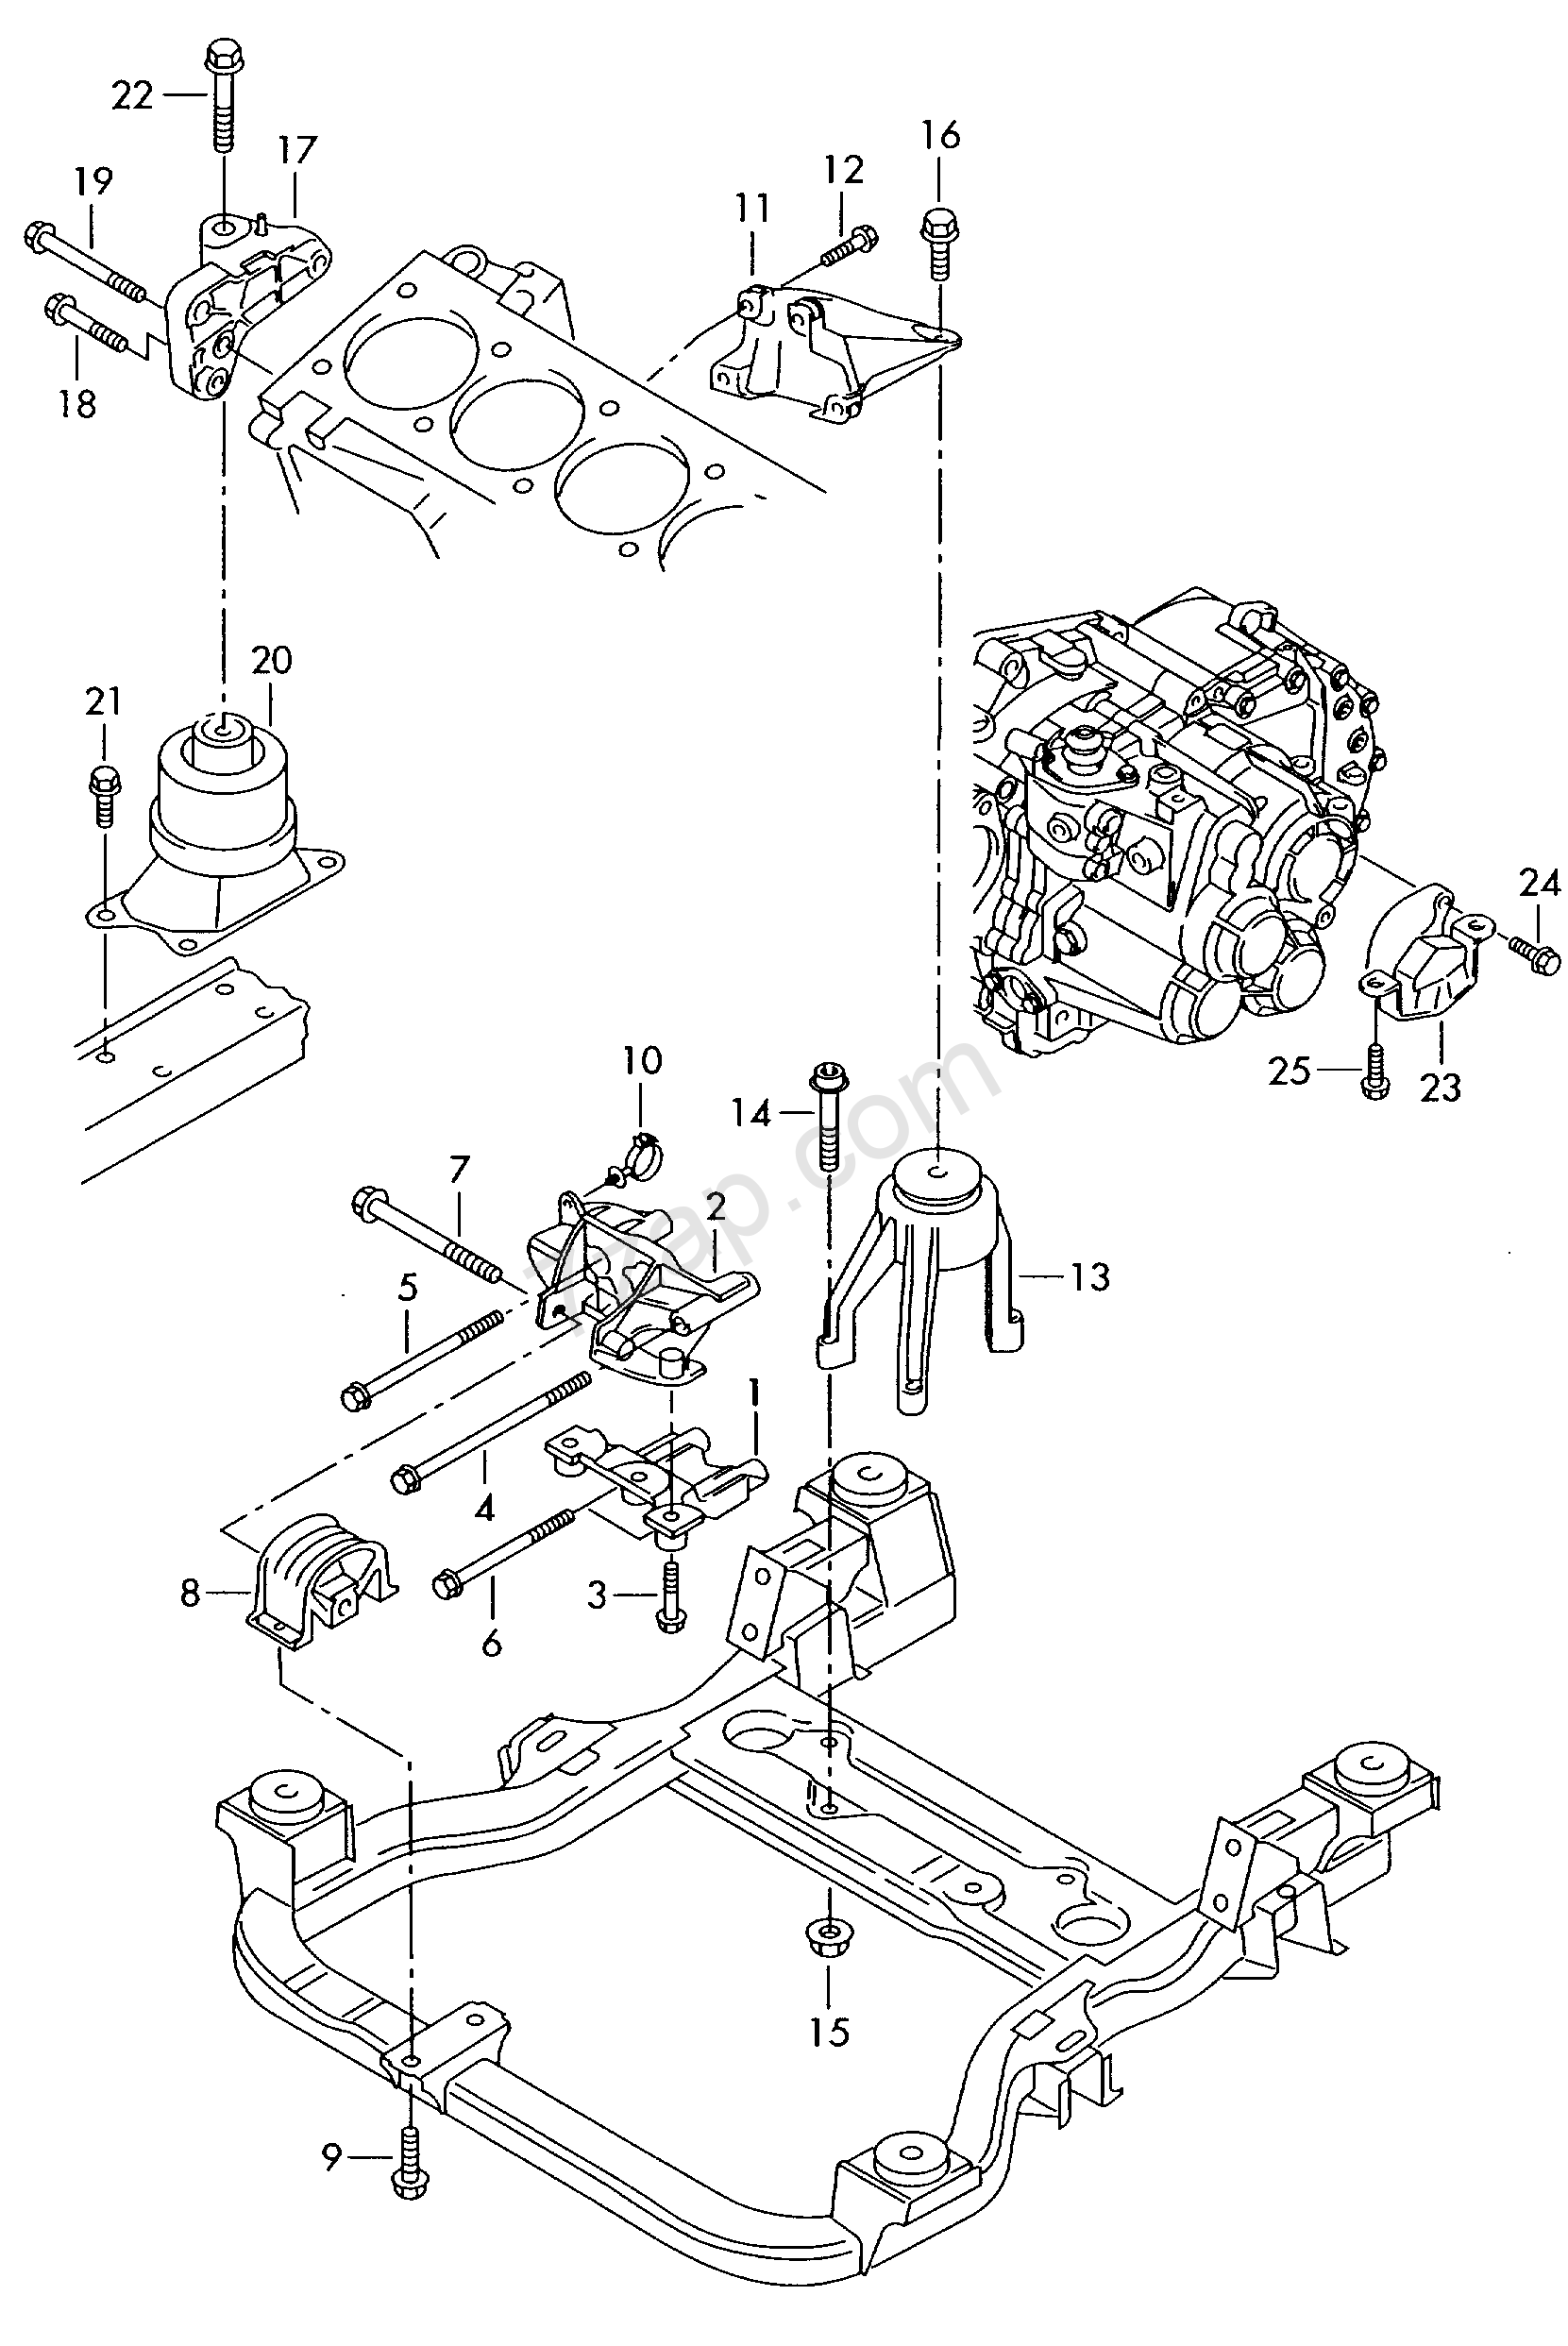 mounting parts for engine and transmission Transporter (TR